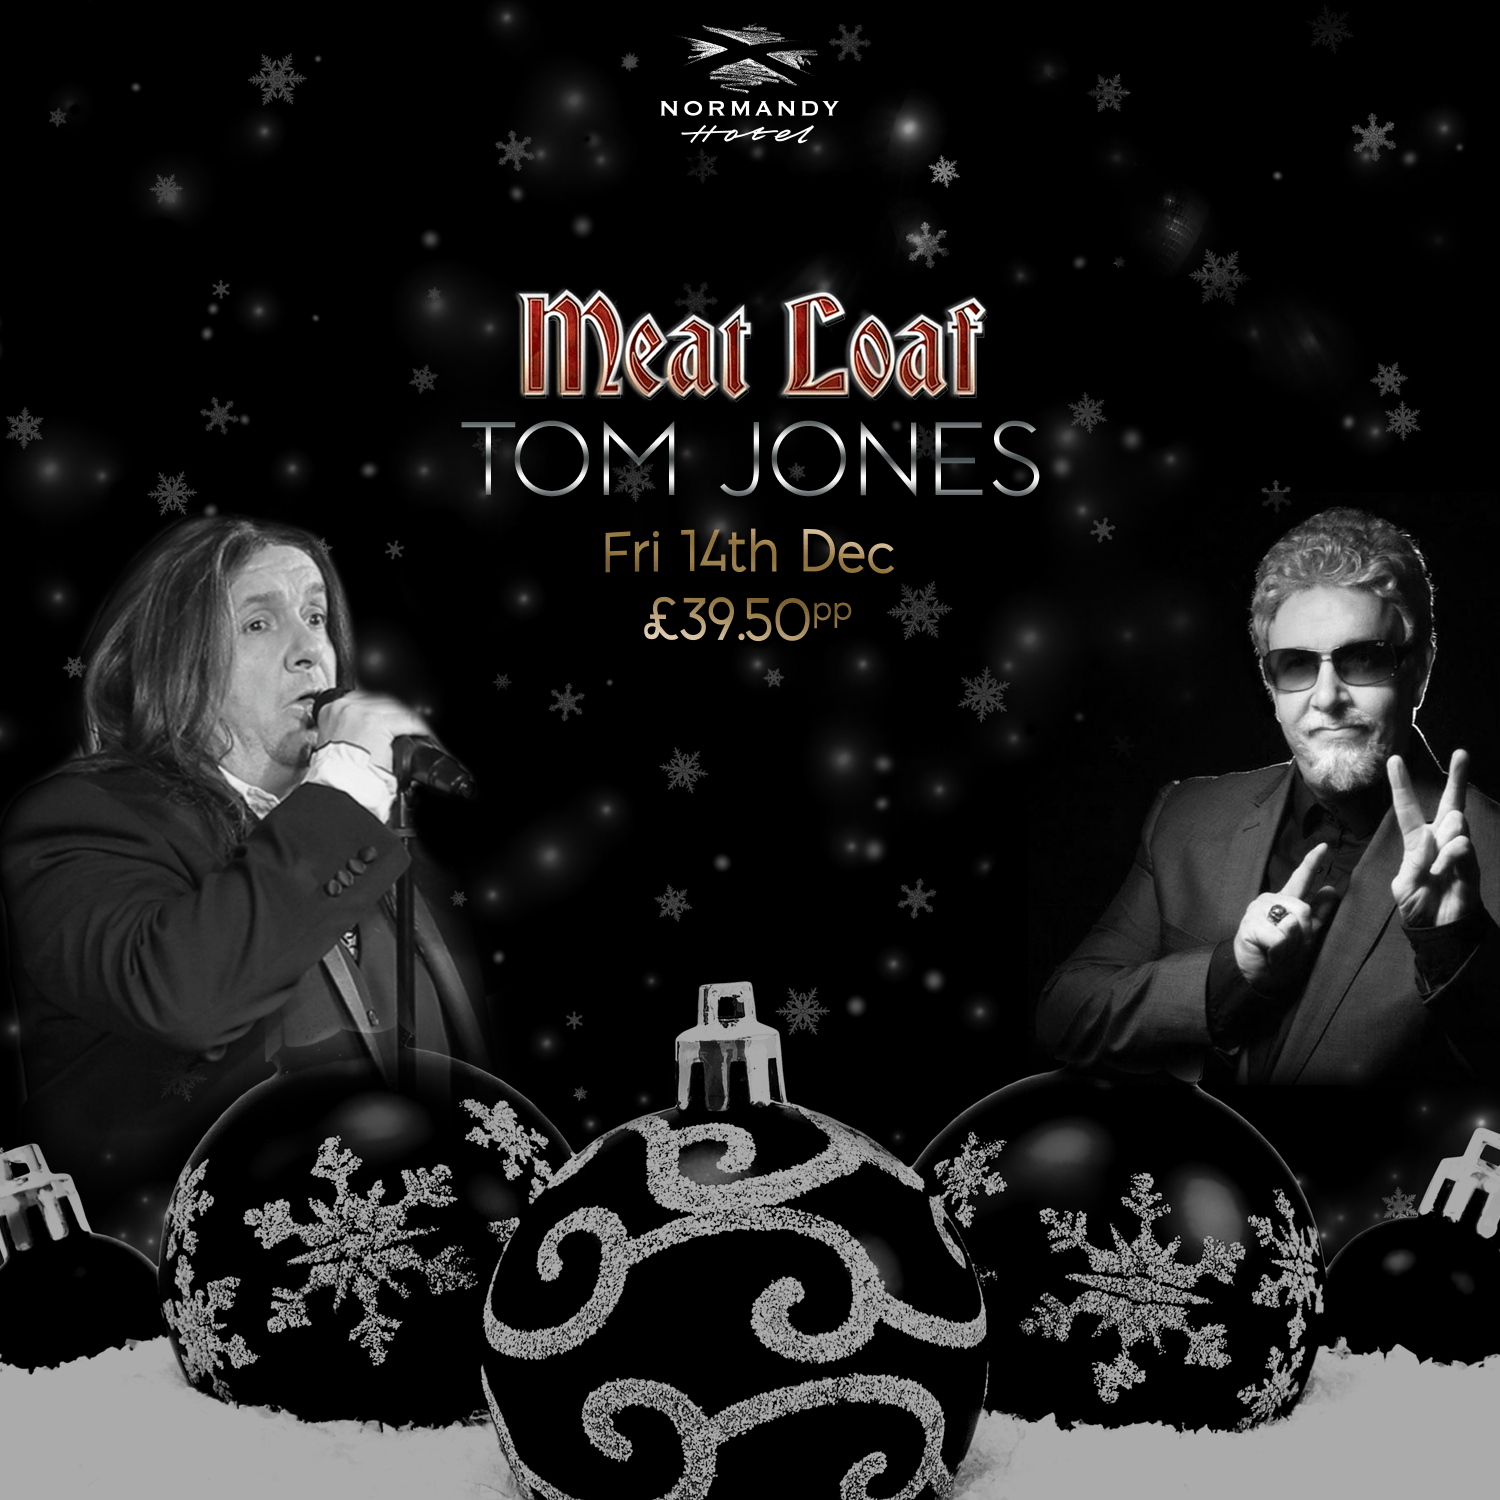 Two men, one singing, the other wearing sun glasses. Meat Loaf & Tom Jones tribute night, 14th December 2018 at the Normandy Hotel, £39.50 per person.